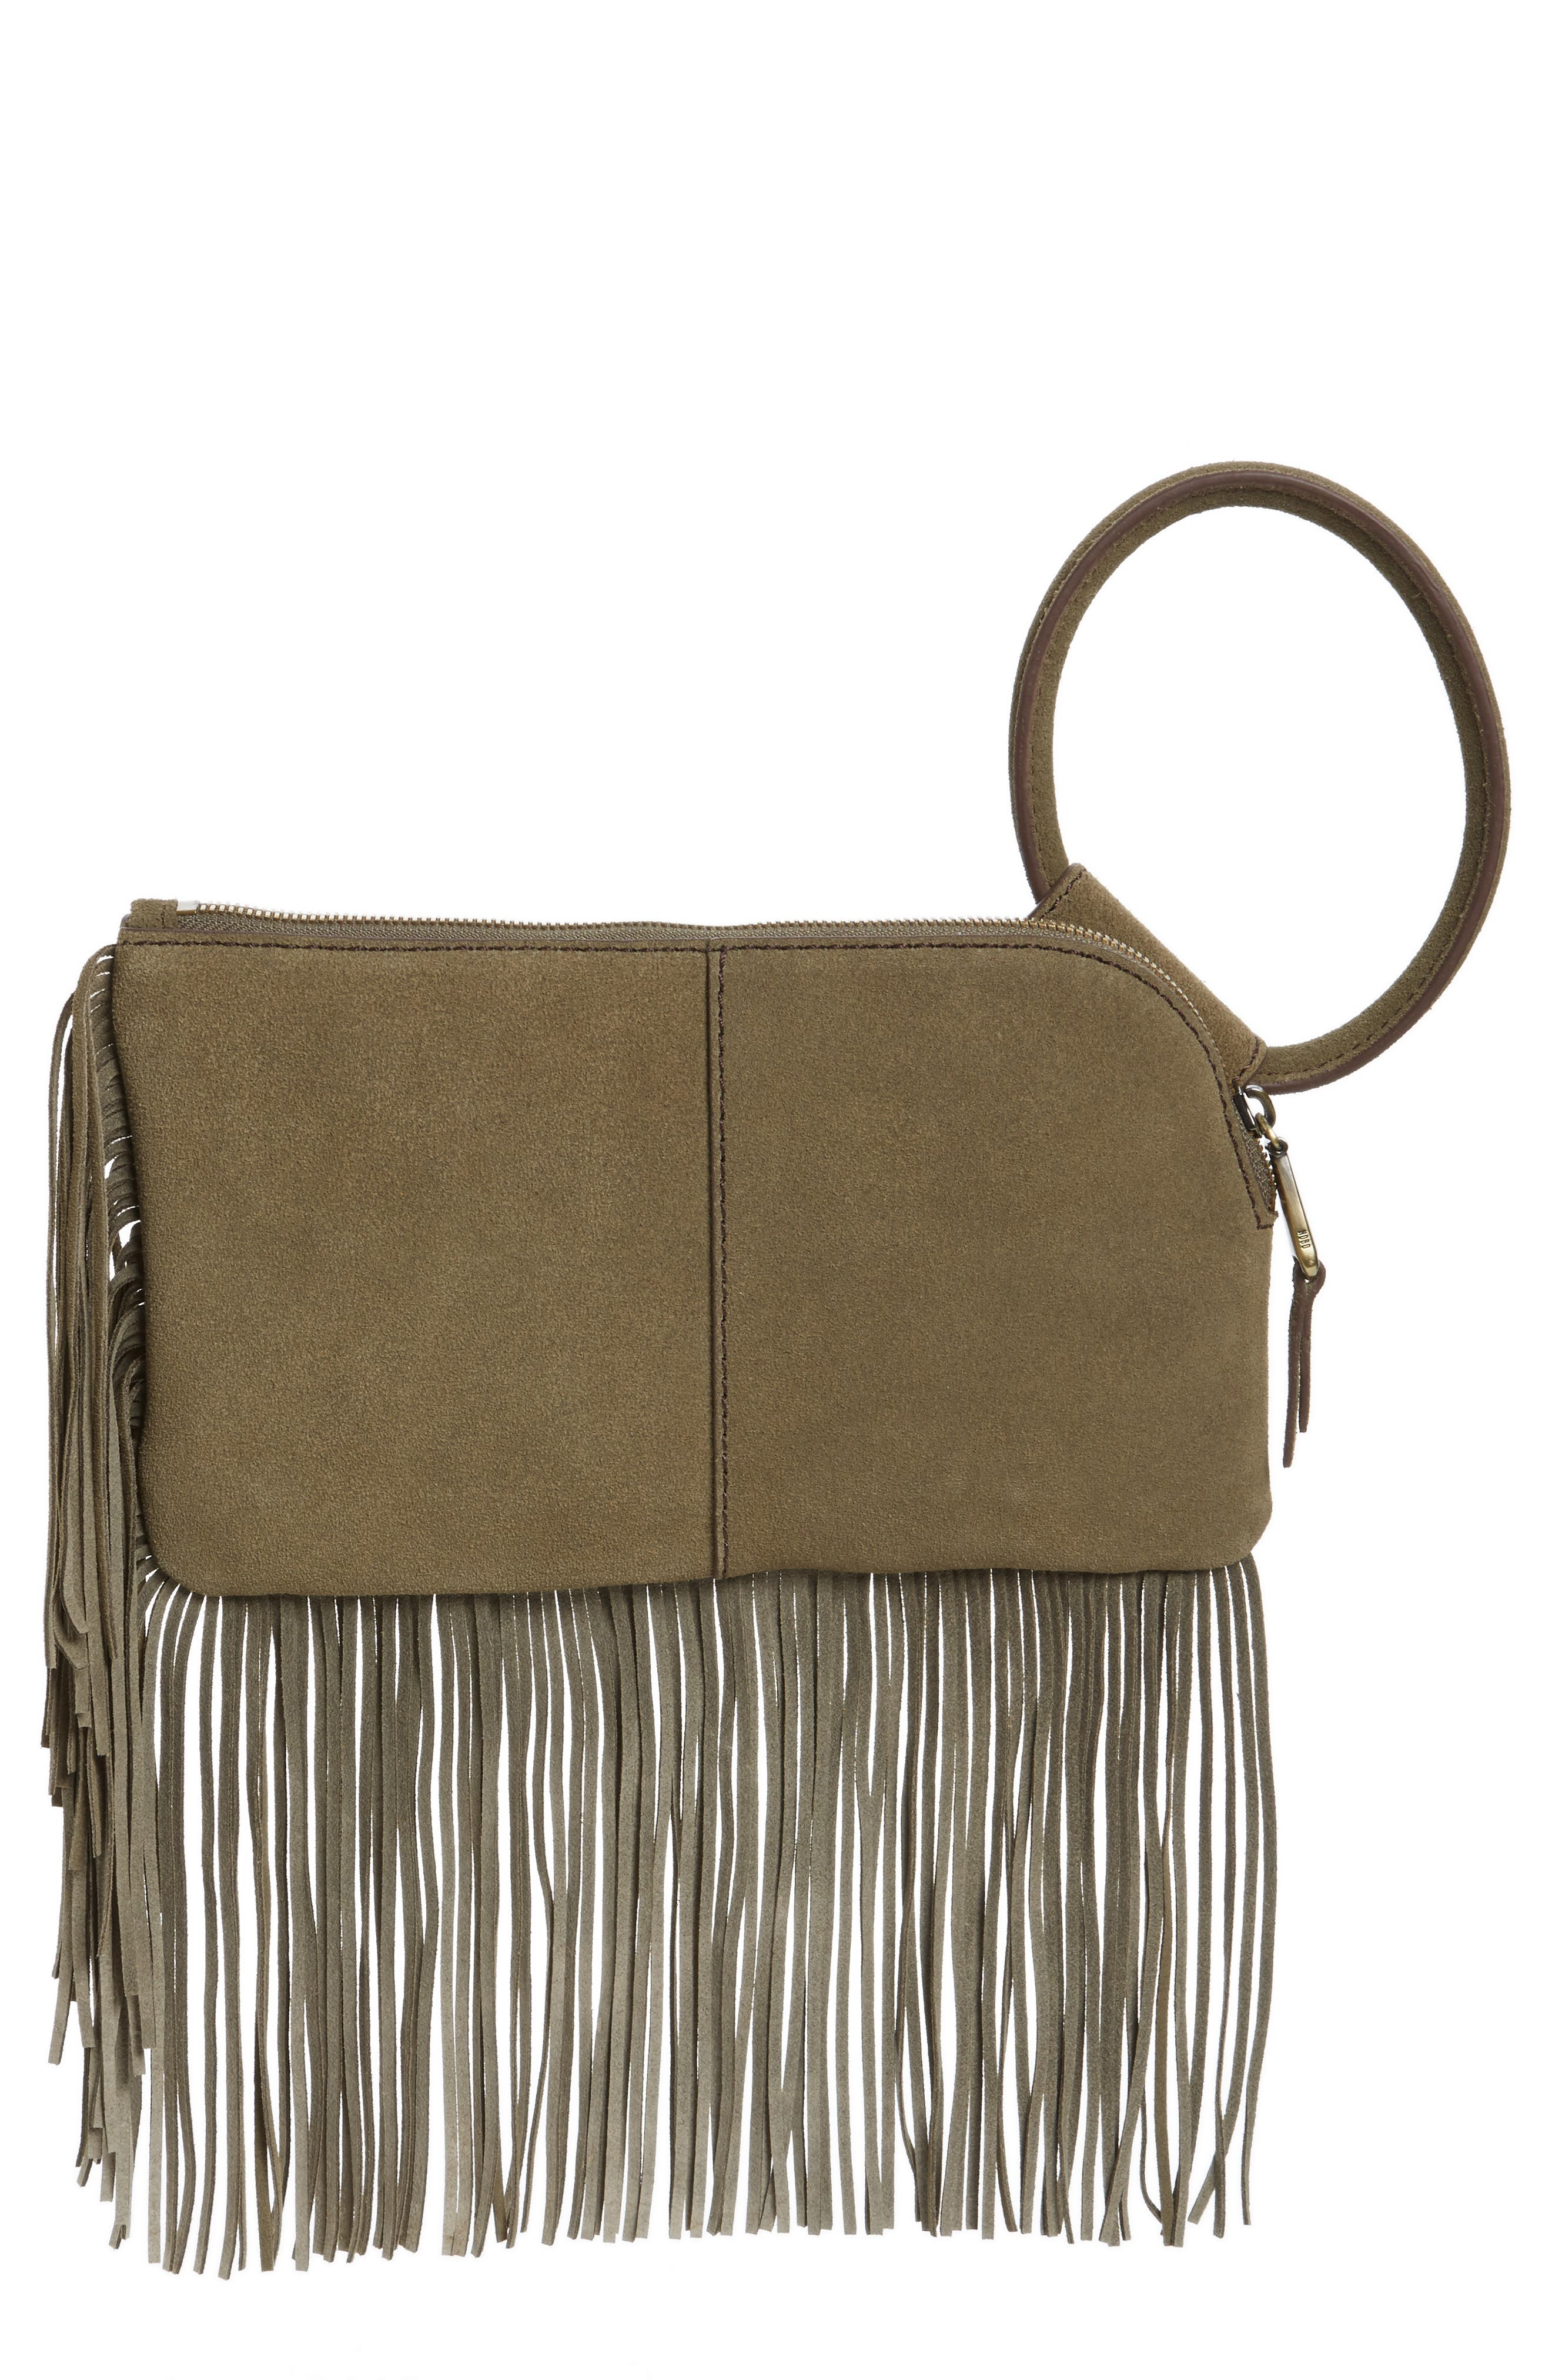 Main Image - Hobo Sable Leather Clutch